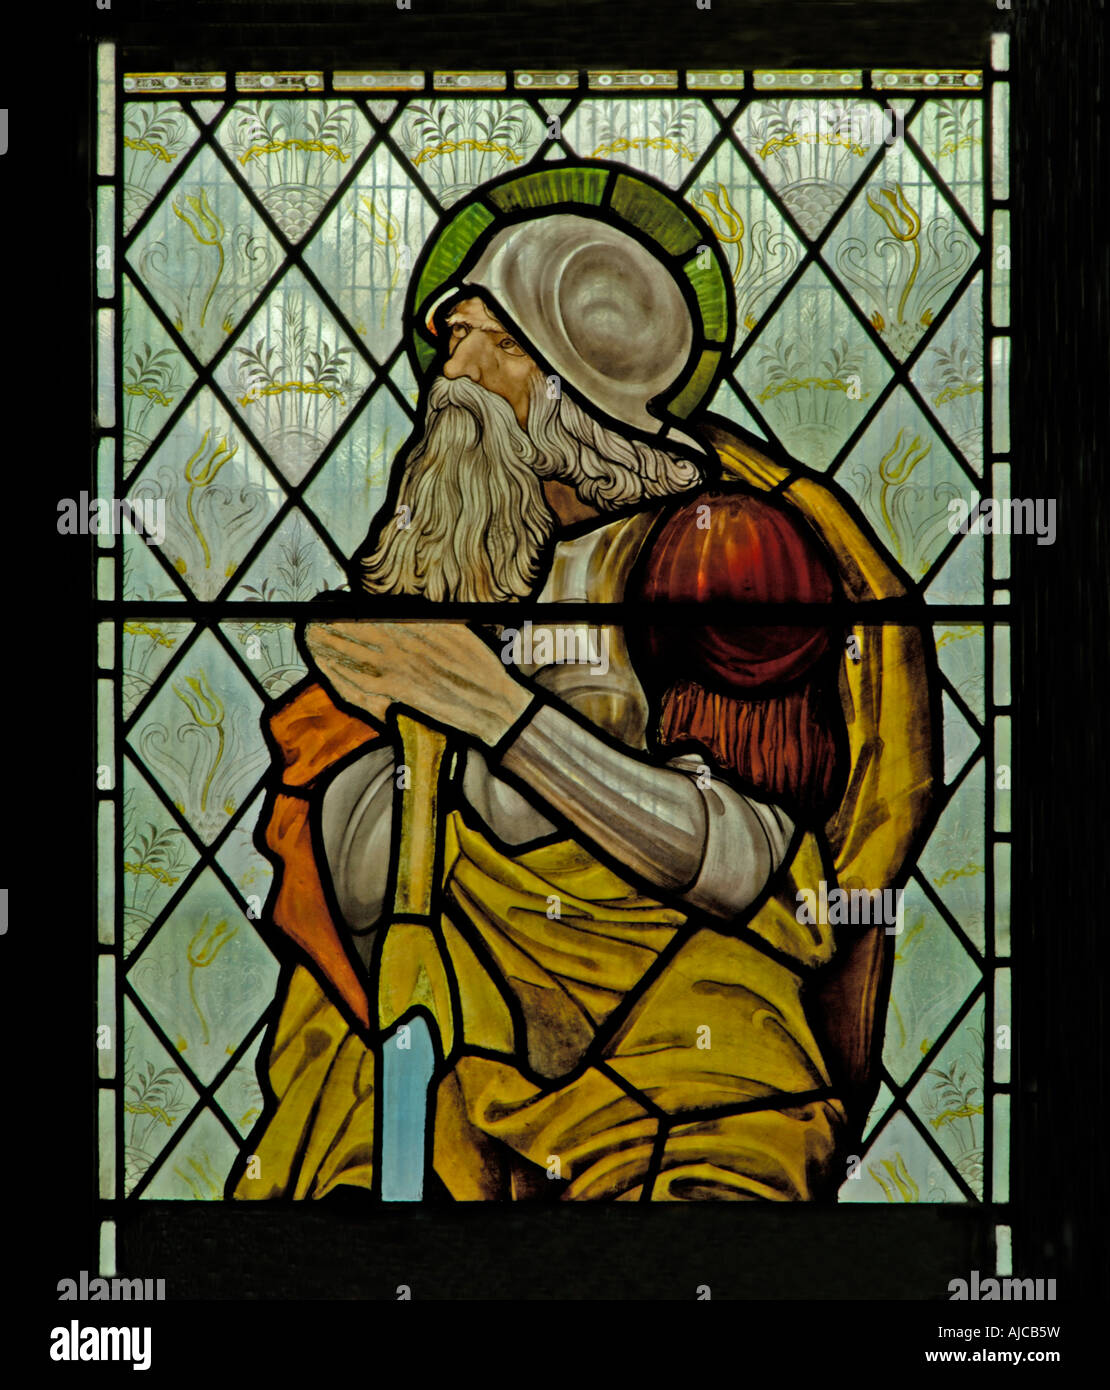 Abraham patriarch window (detail). Church of Saint Martin, Brampton, Cumbria, England, U.K., Europe. Stock Photo